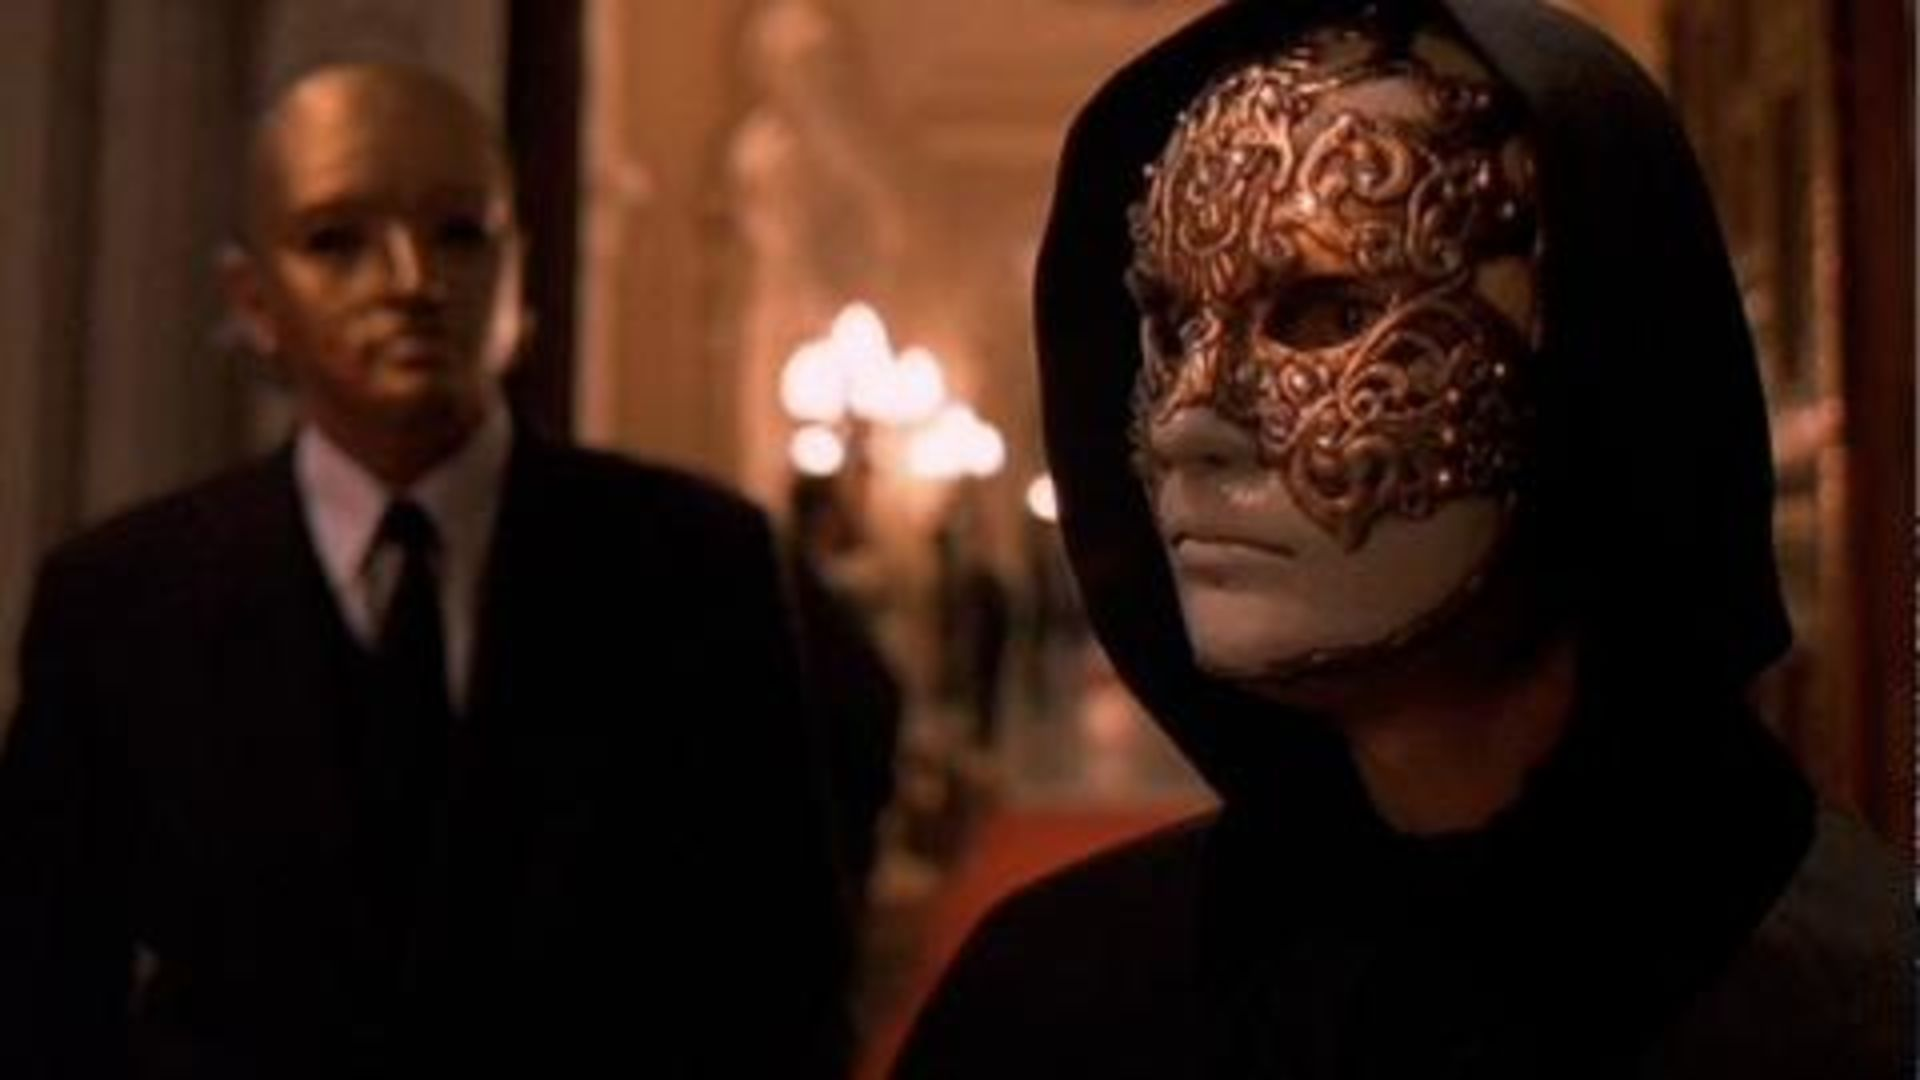 Watch The Front Row Eyes Wide Shut The New Yorker Video Cne Newyorker Com The New Yorker